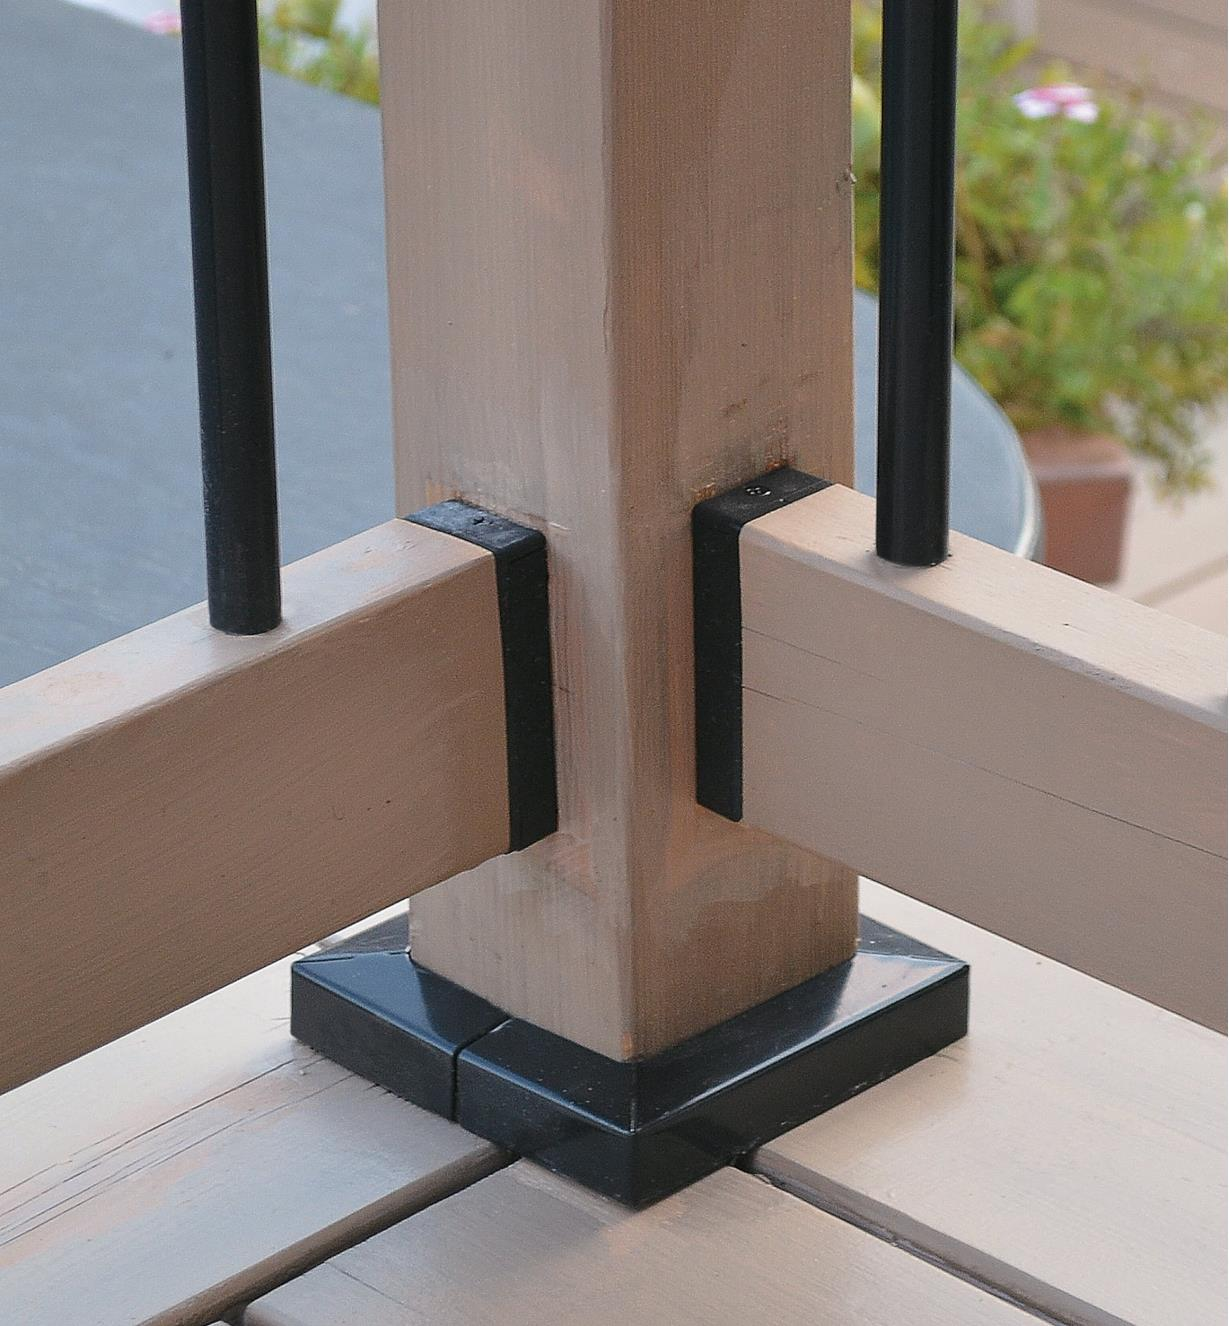 Two railings connected to a corner post with railing connectors